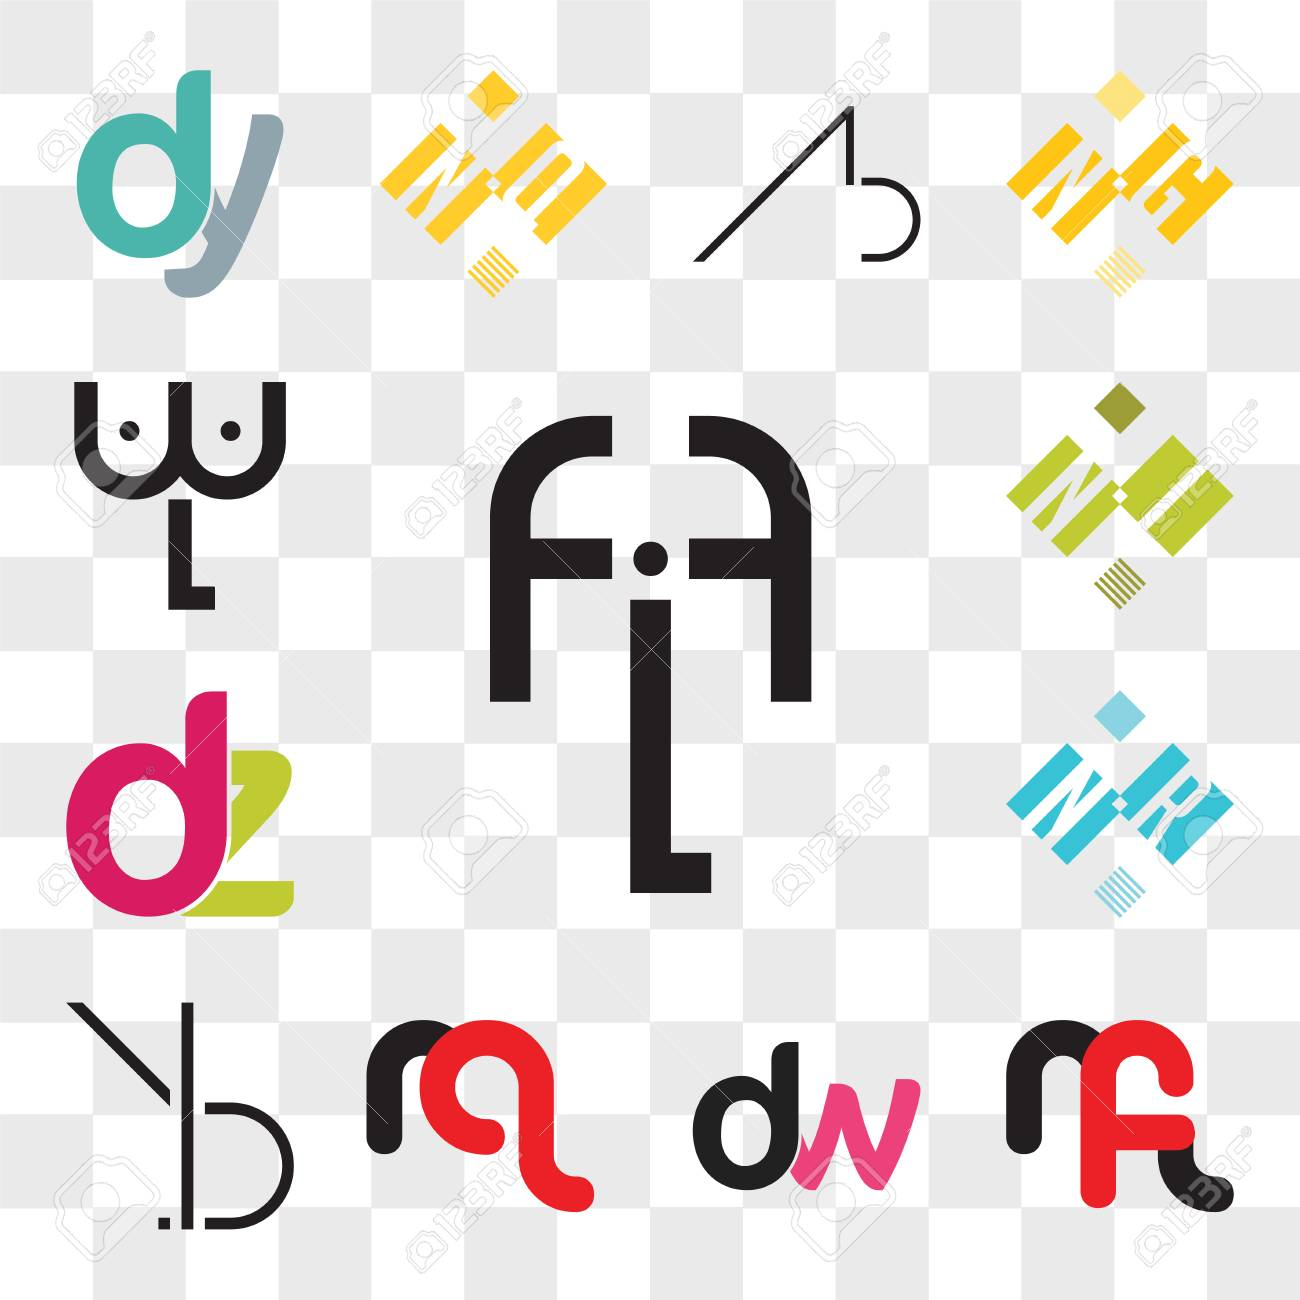 Set Of 13 transparent editable icons such as fLf, mf or fm, dw, wd, mq qm, BR, RB, NR RN, dz, zd, NI IN, wL, web ui icon pack, transparency set - 106769859